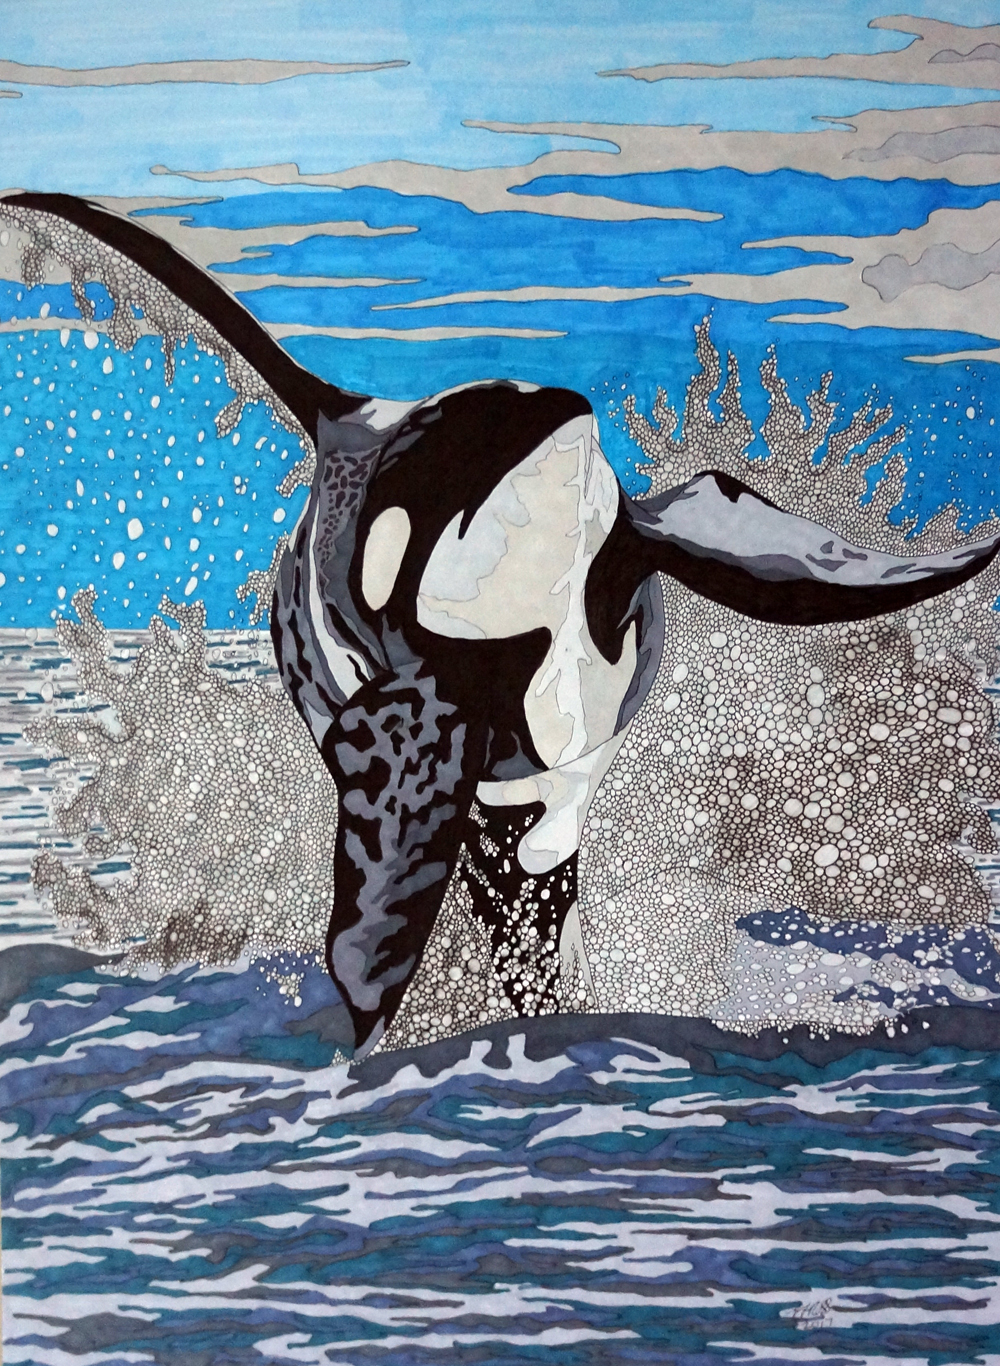 Orca by Sharon T Ross 2017 pen and ink on 250gsm paper 55x40cm (2)